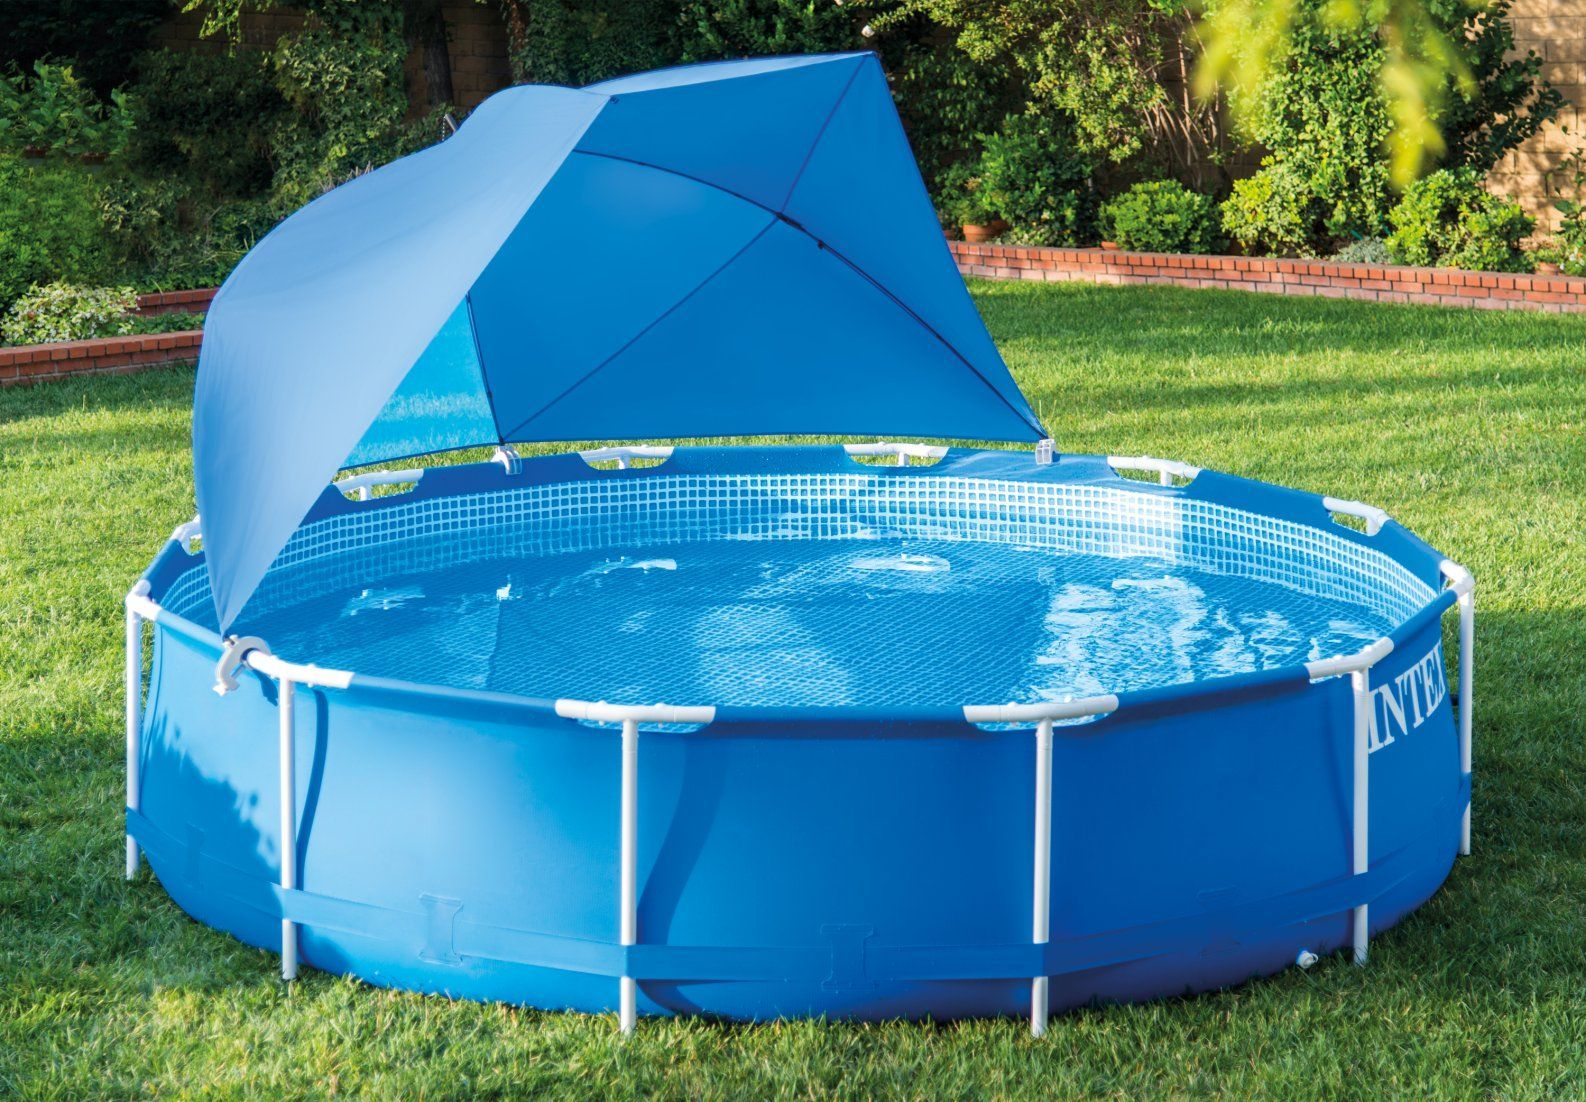 Pool Canopy - Pool Accessories - Above Ground Pools - Store ...